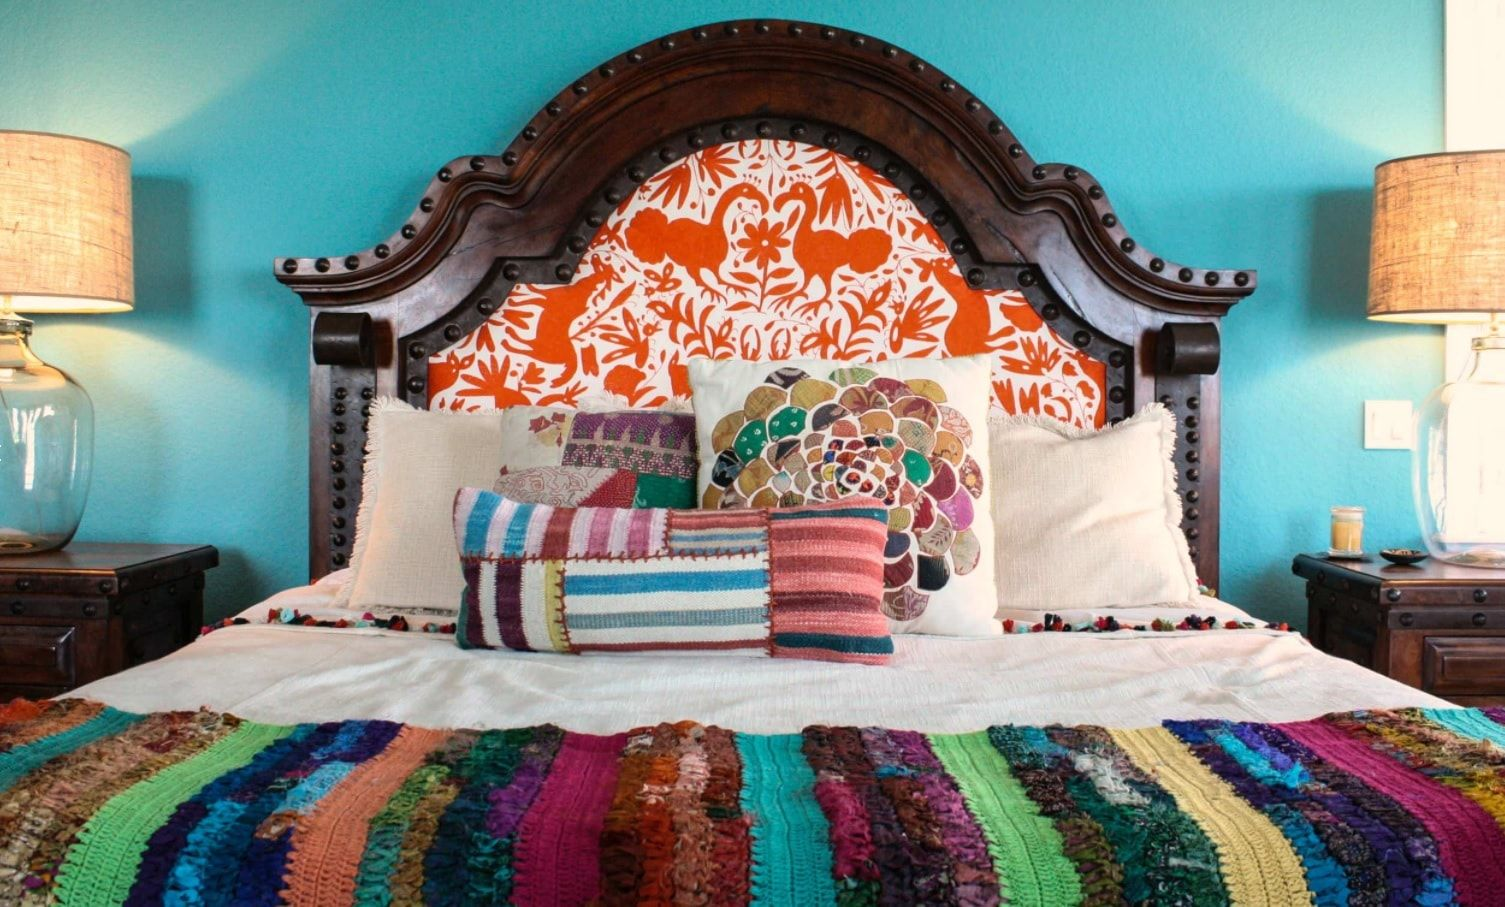 Massive wooden headboard for the Classic decorated bed in the pronounced boho interior